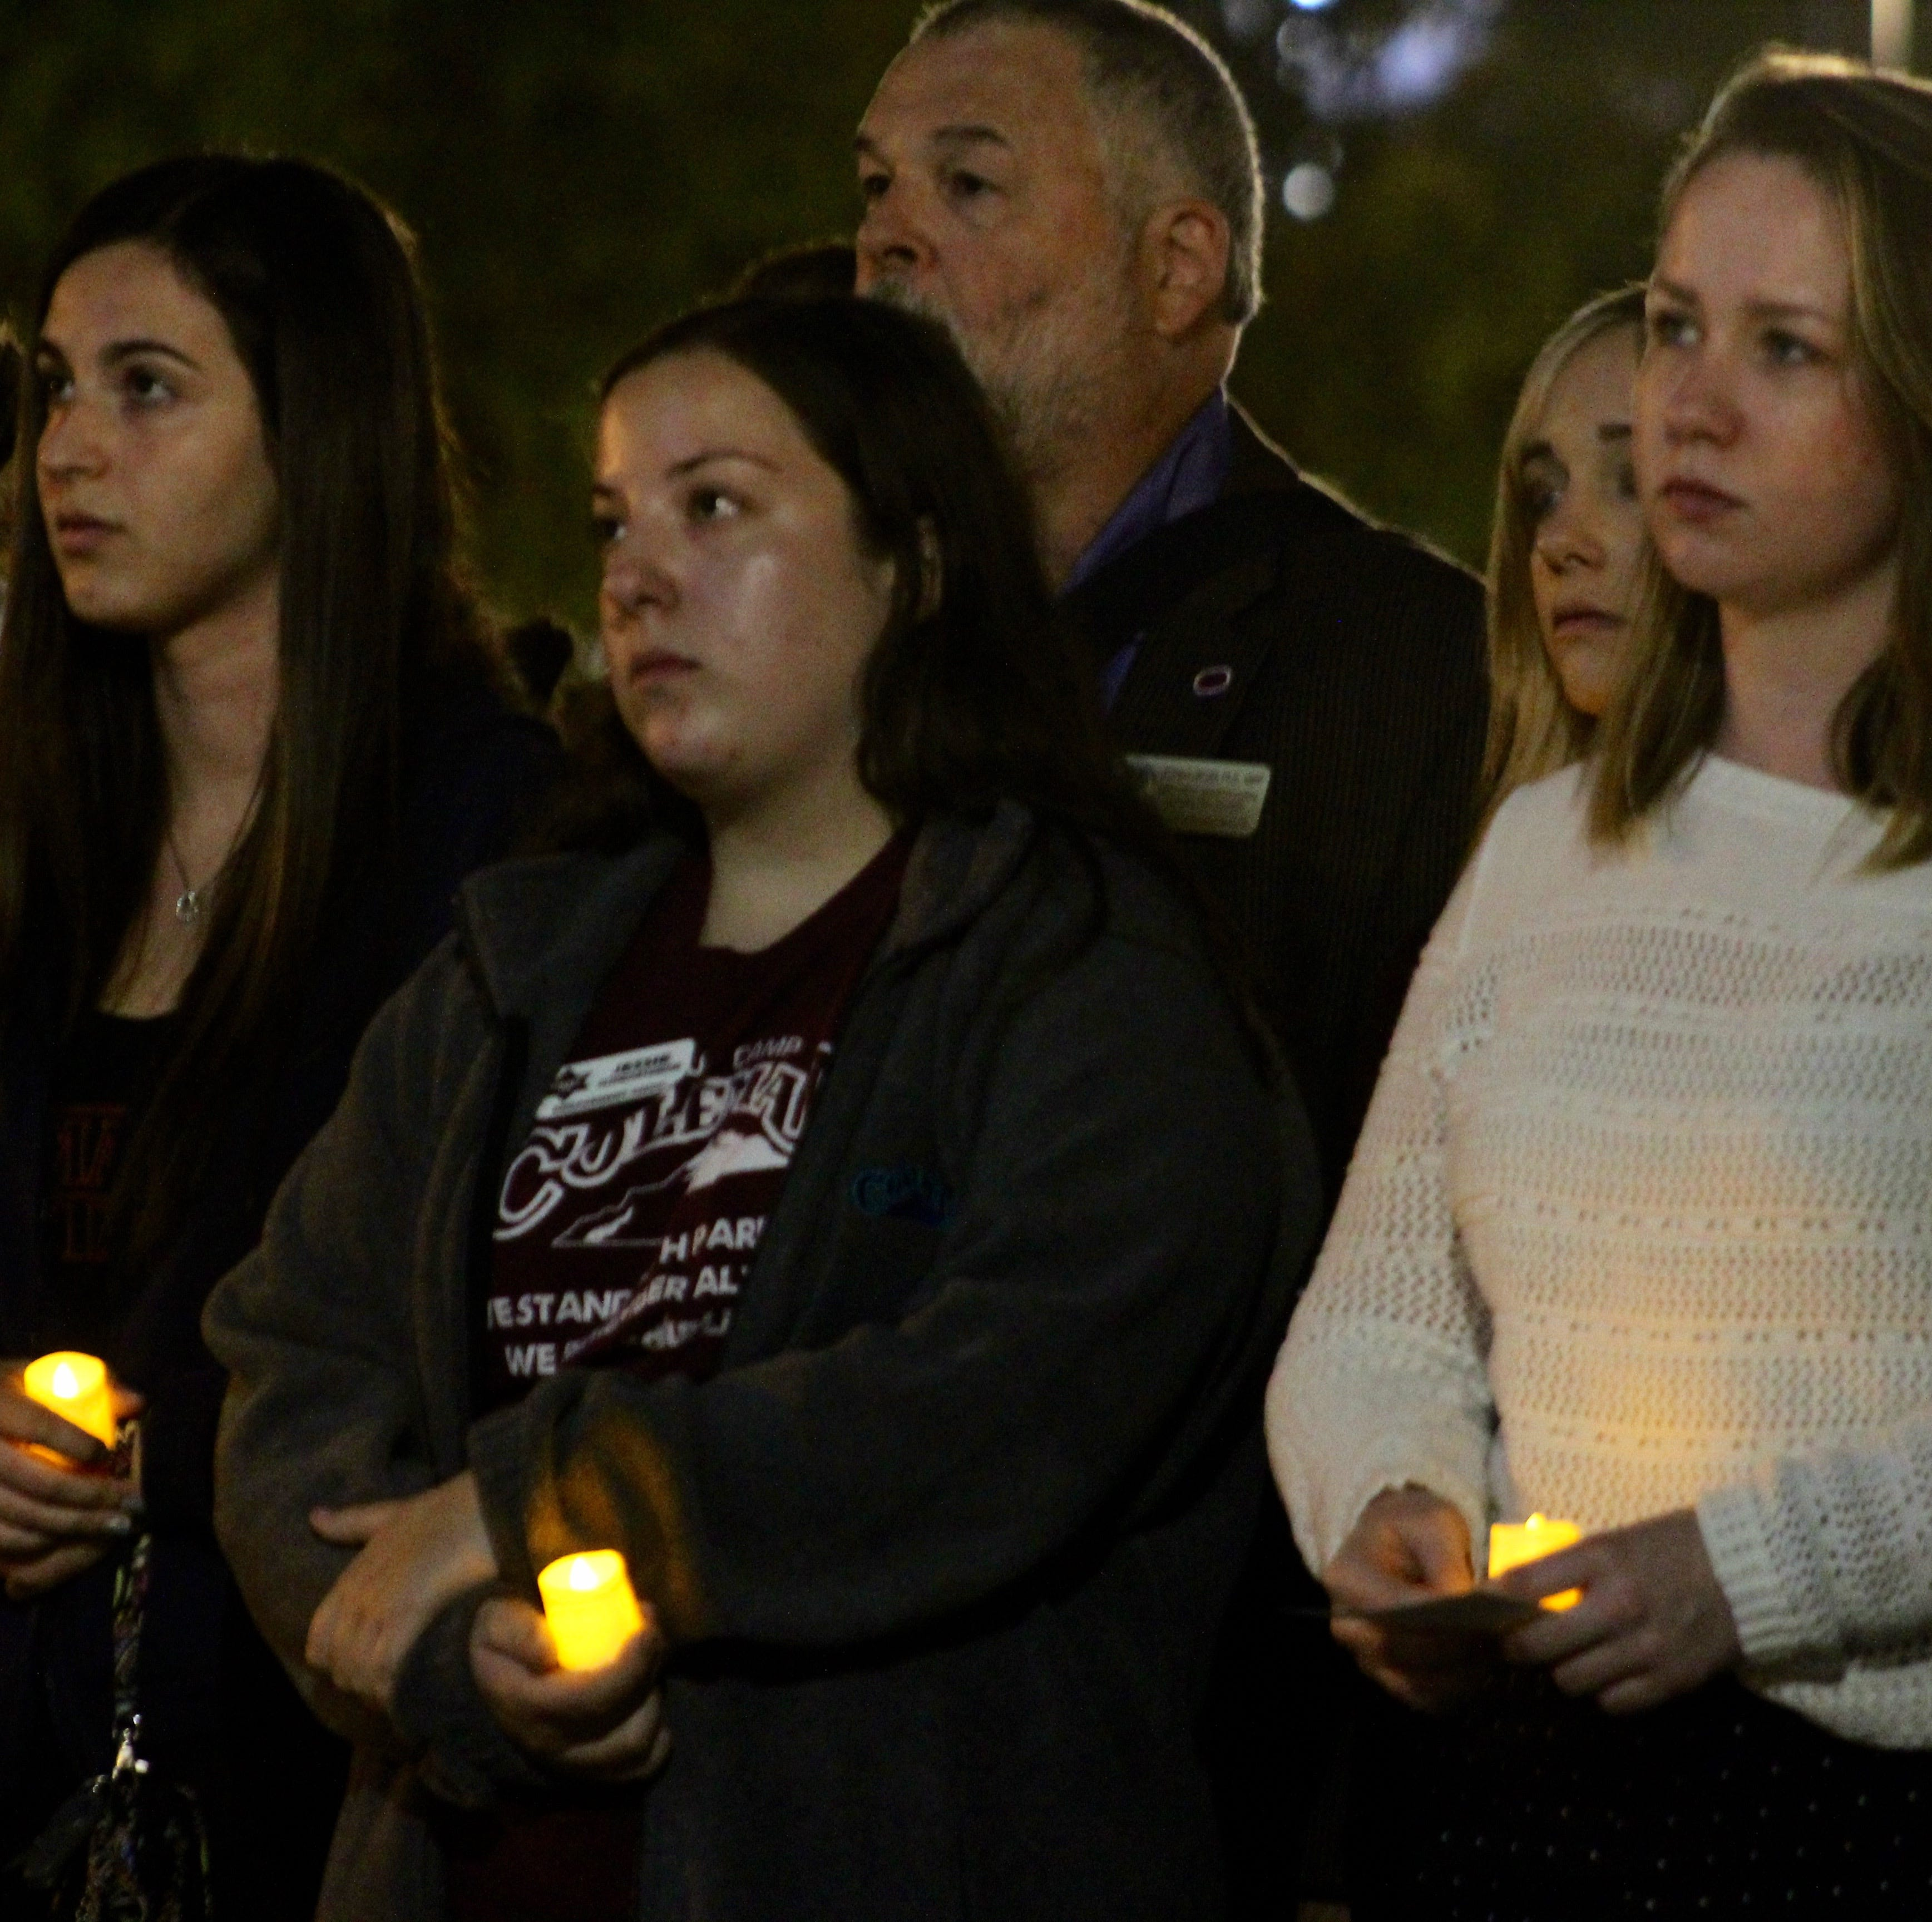 FSU holds vigil honoring victims of Pittsburgh massacre